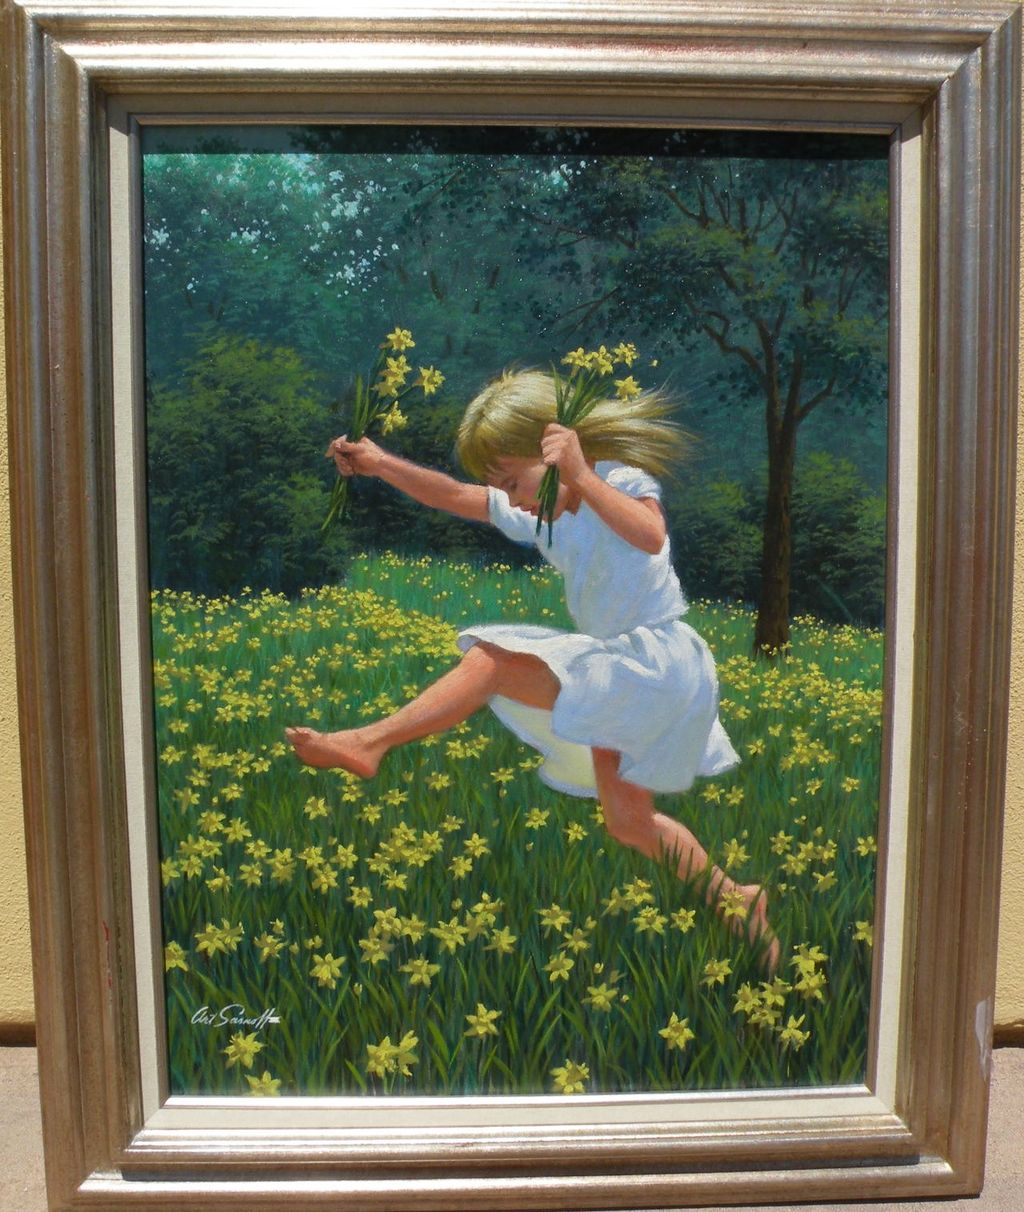 ARTHUR SARNOFF (1912-2000) American illustration art painting of young girl in a field of flowers